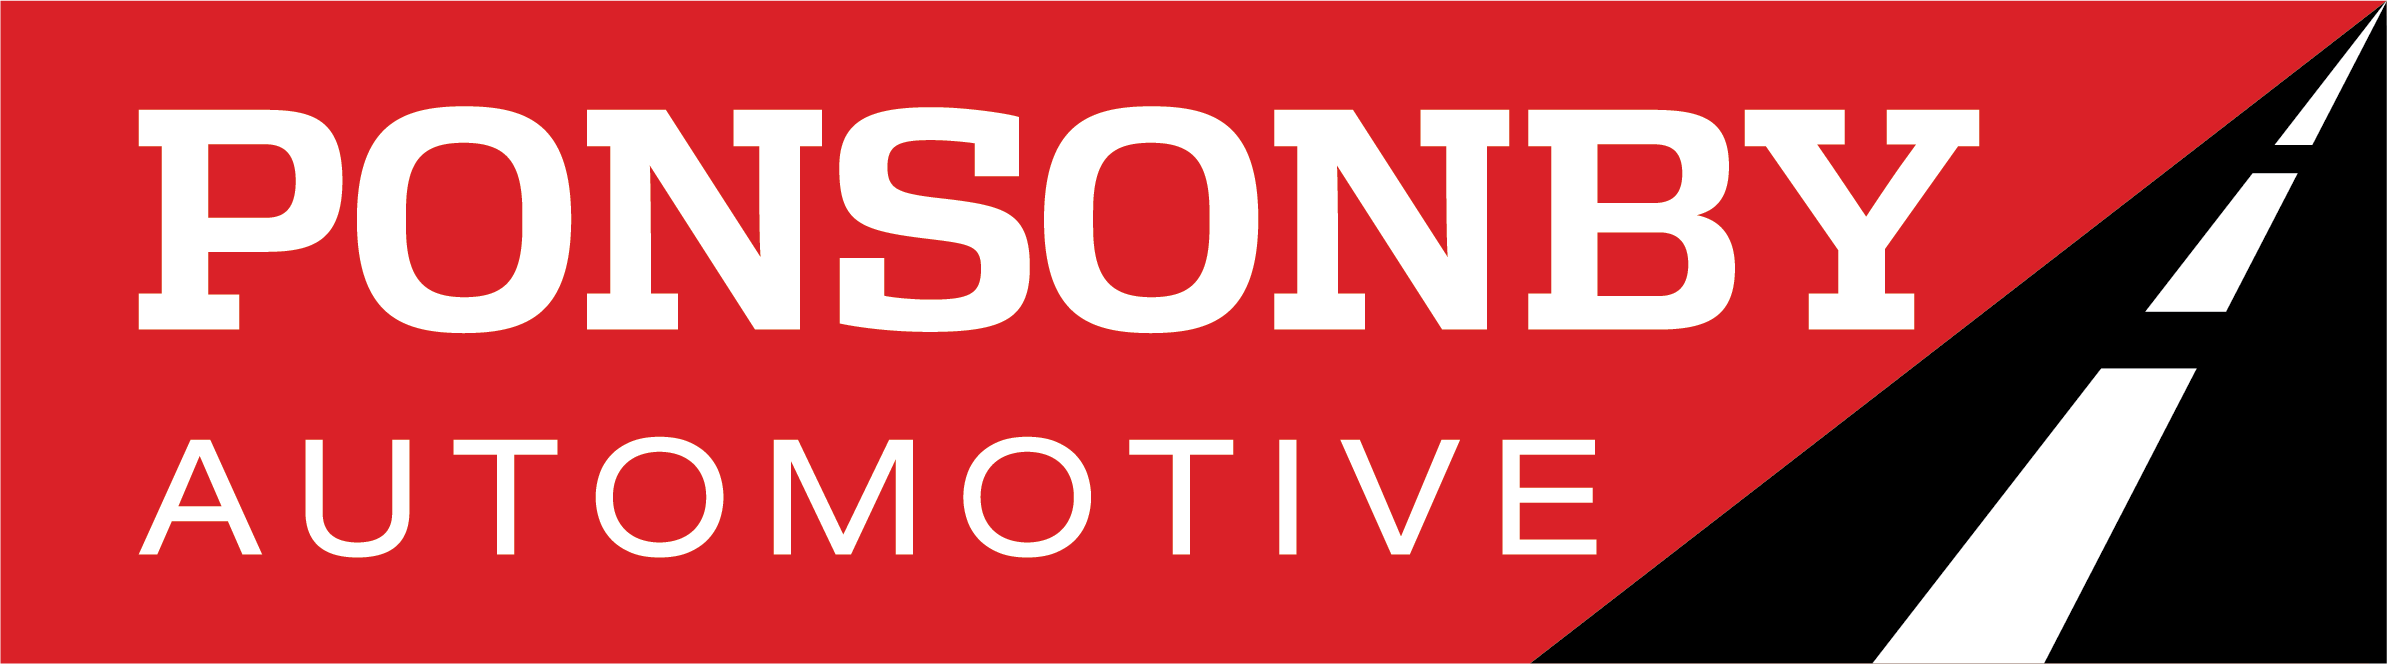 PonsonbyAutomotiveLogo.png